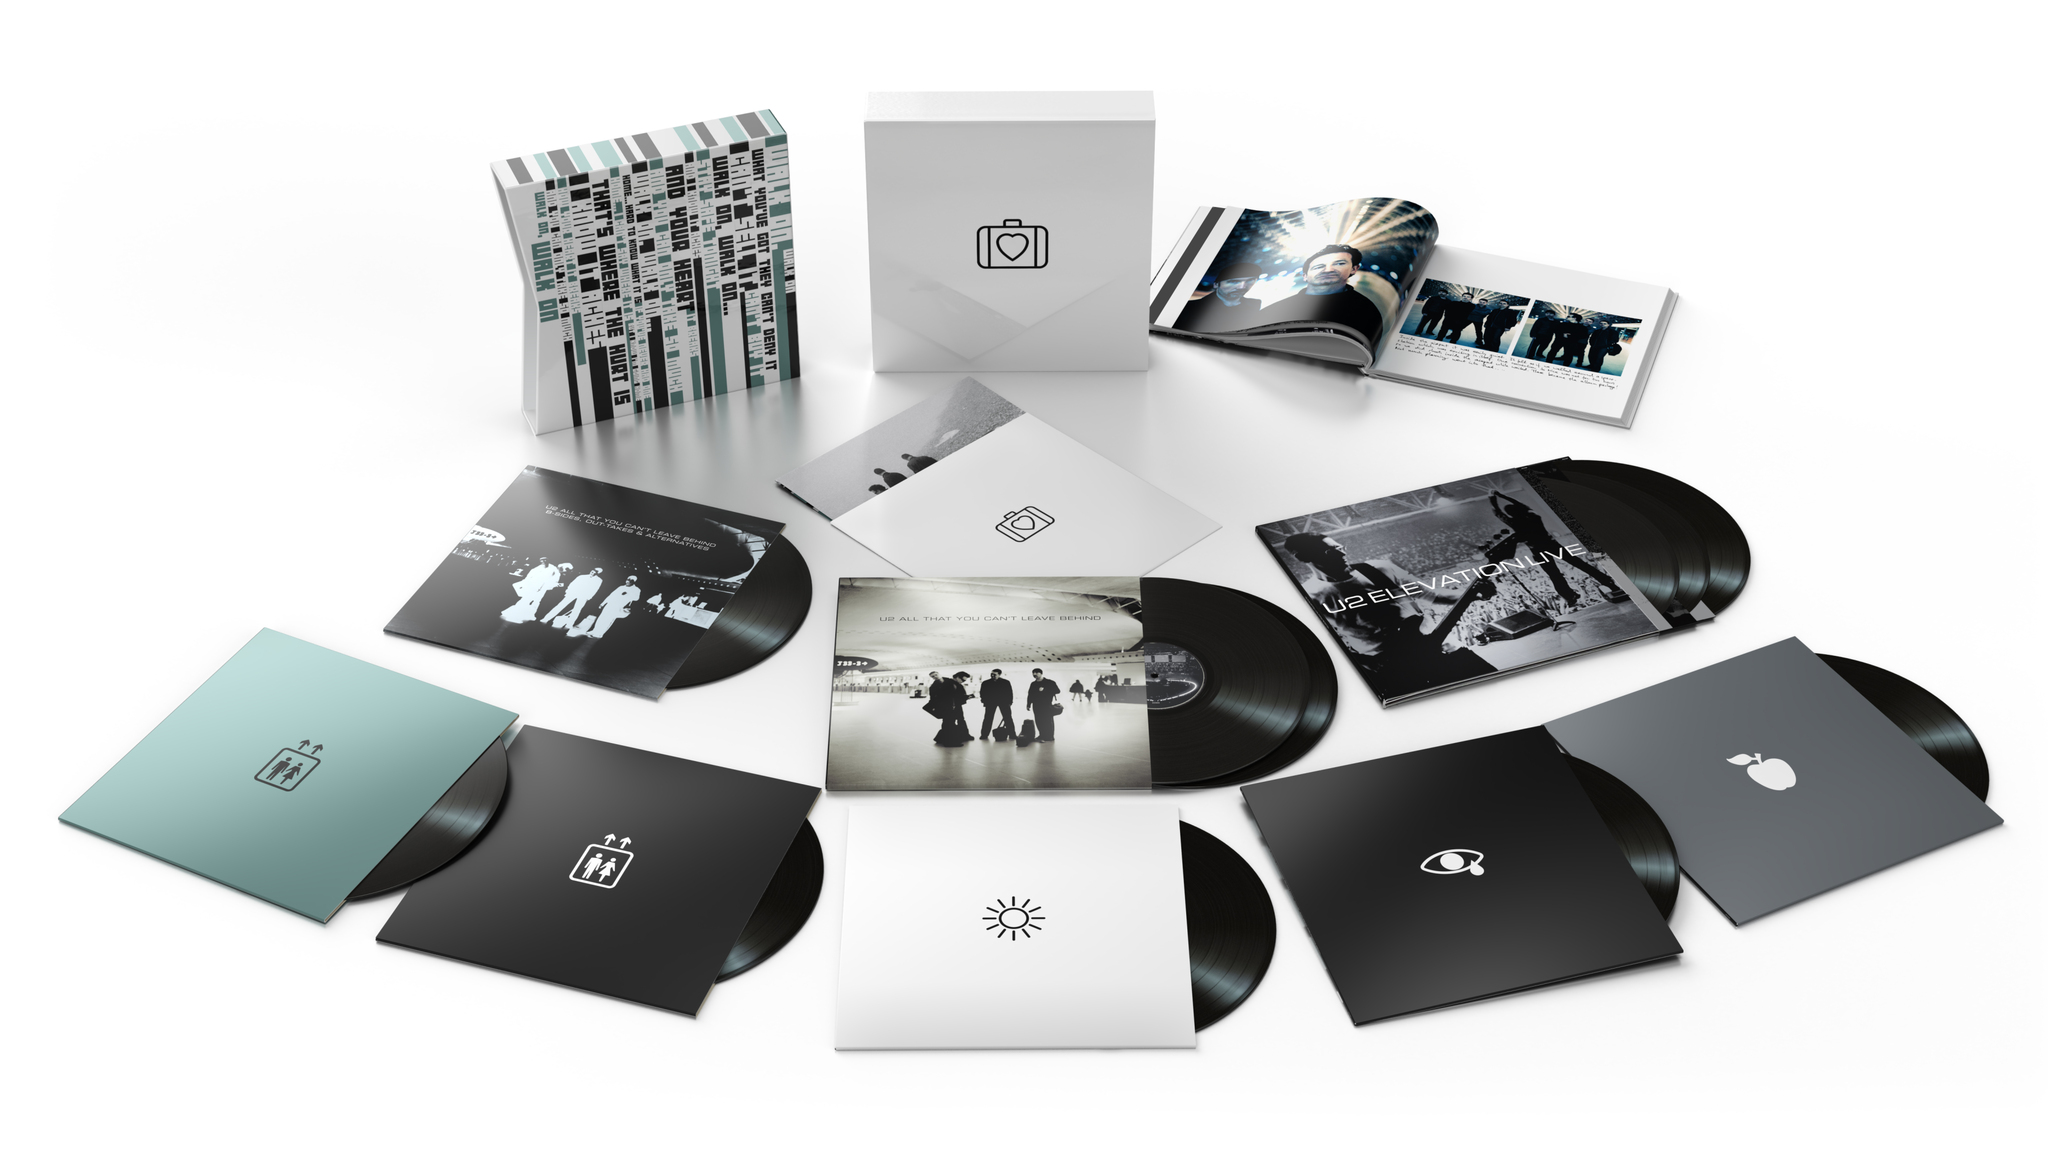 U2 – All That You Can't Leave Behind (20th Anniversary) – 12″X 11 – Super Deluxe Boxset [OCT 30th]